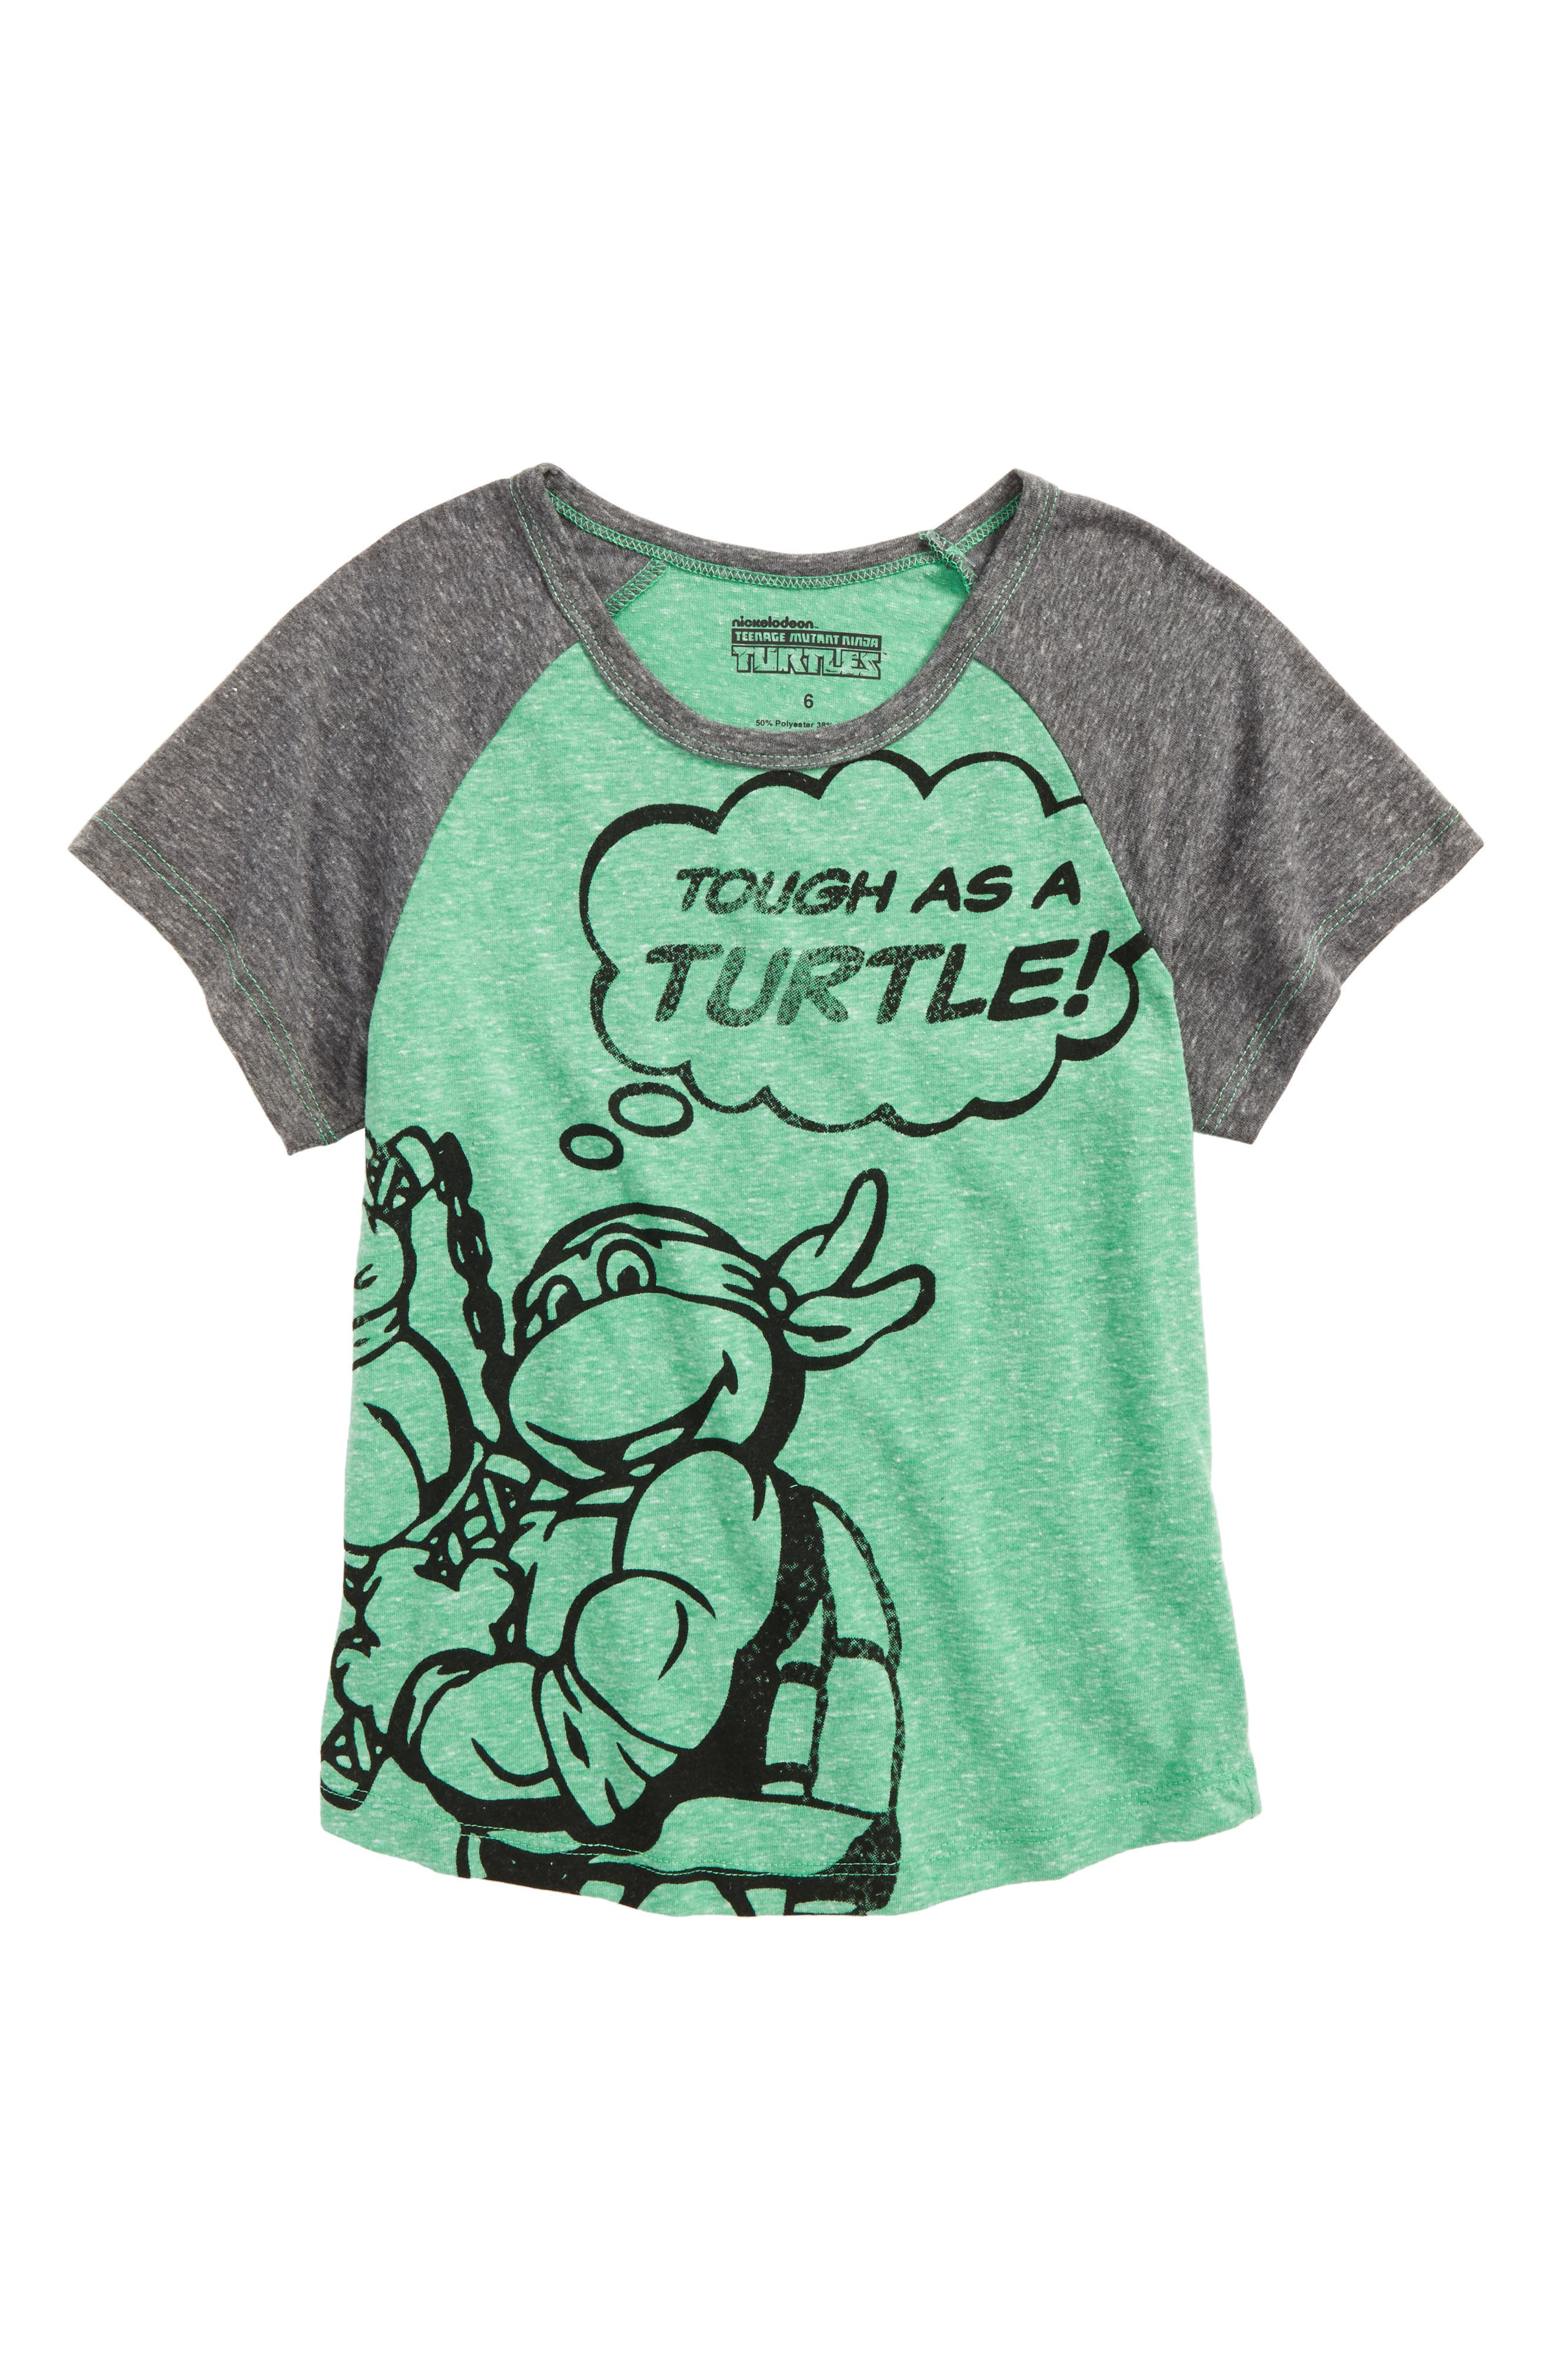 TMNT - Tough as a Turtle Graphic T-Shirt,                         Main,                         color, Green